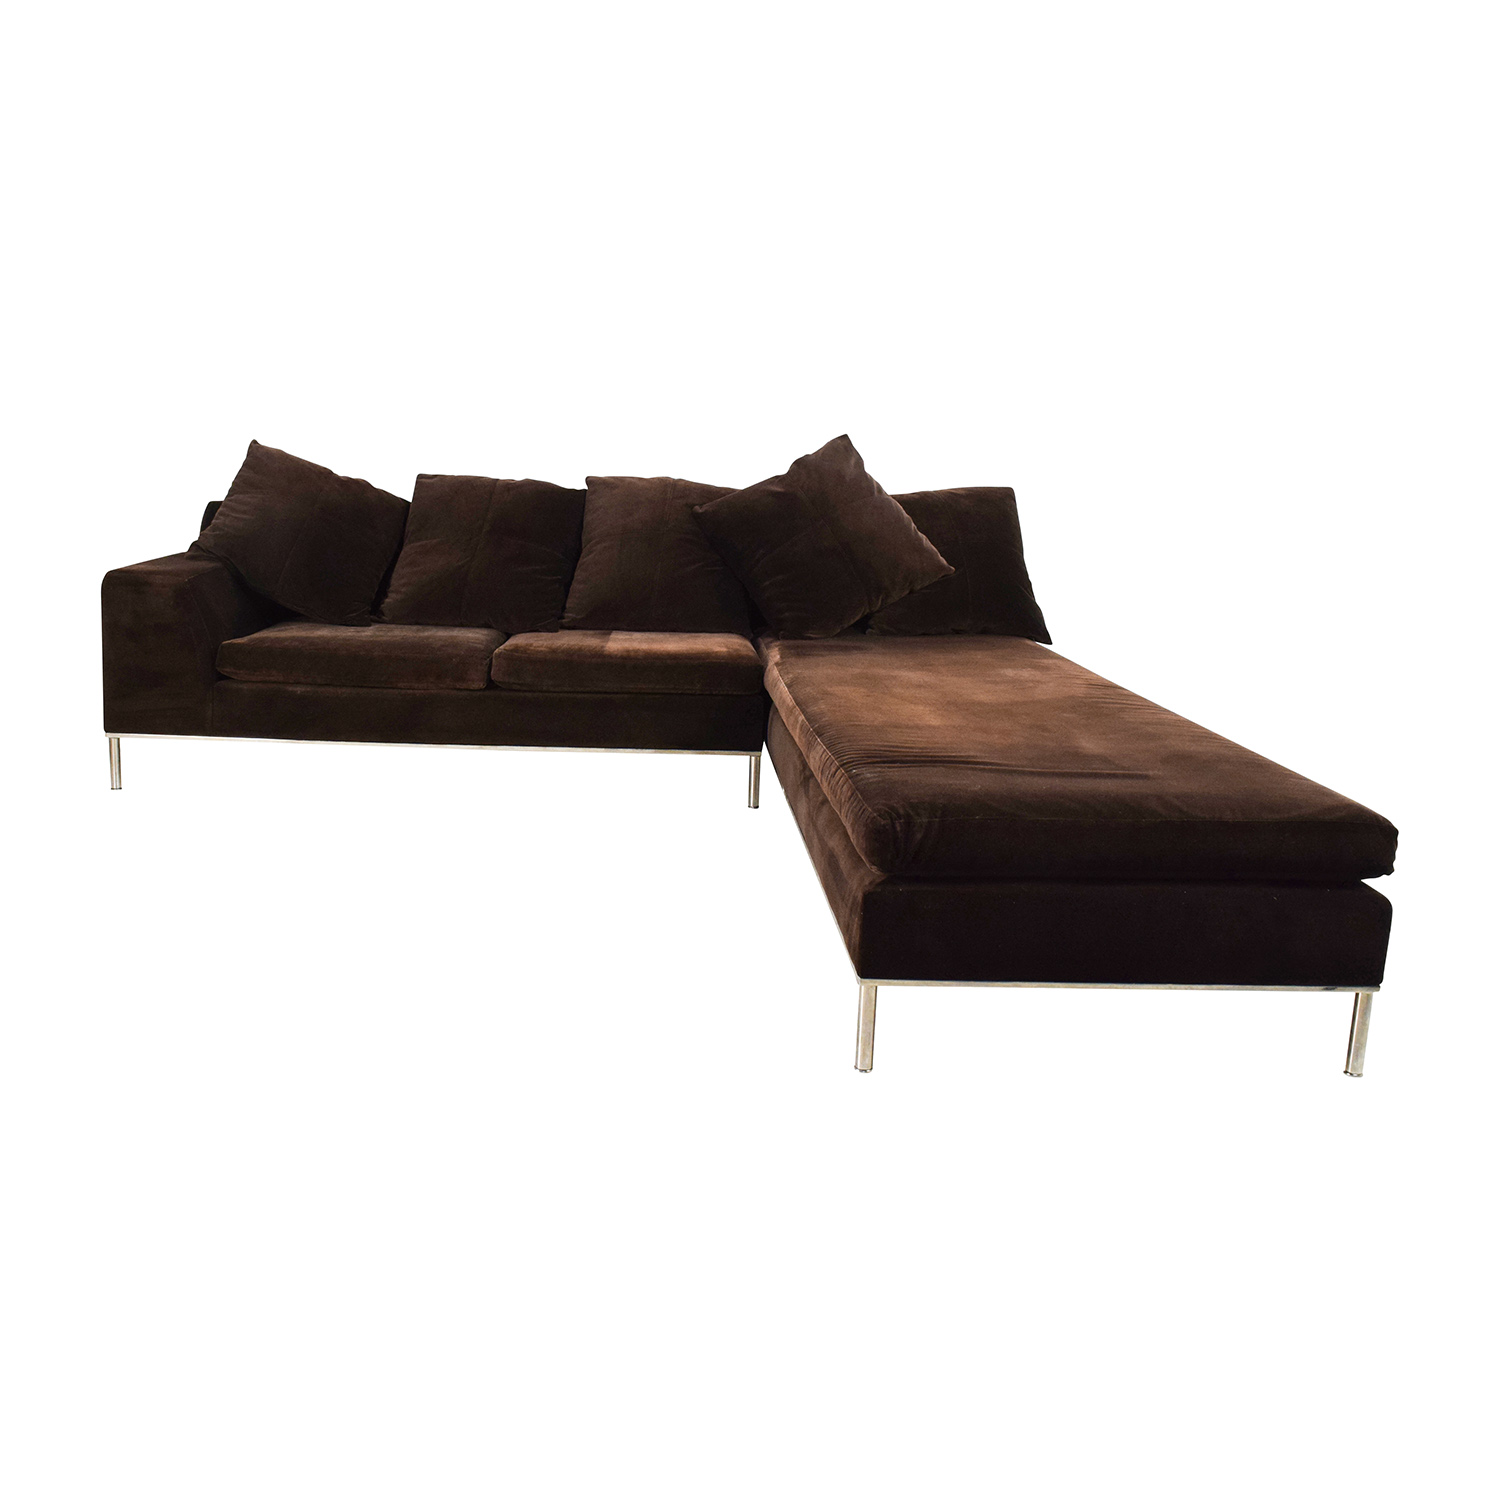 87% OFF - Vioski Vioski Velvet Lounge Sectional Sofa / Sofas